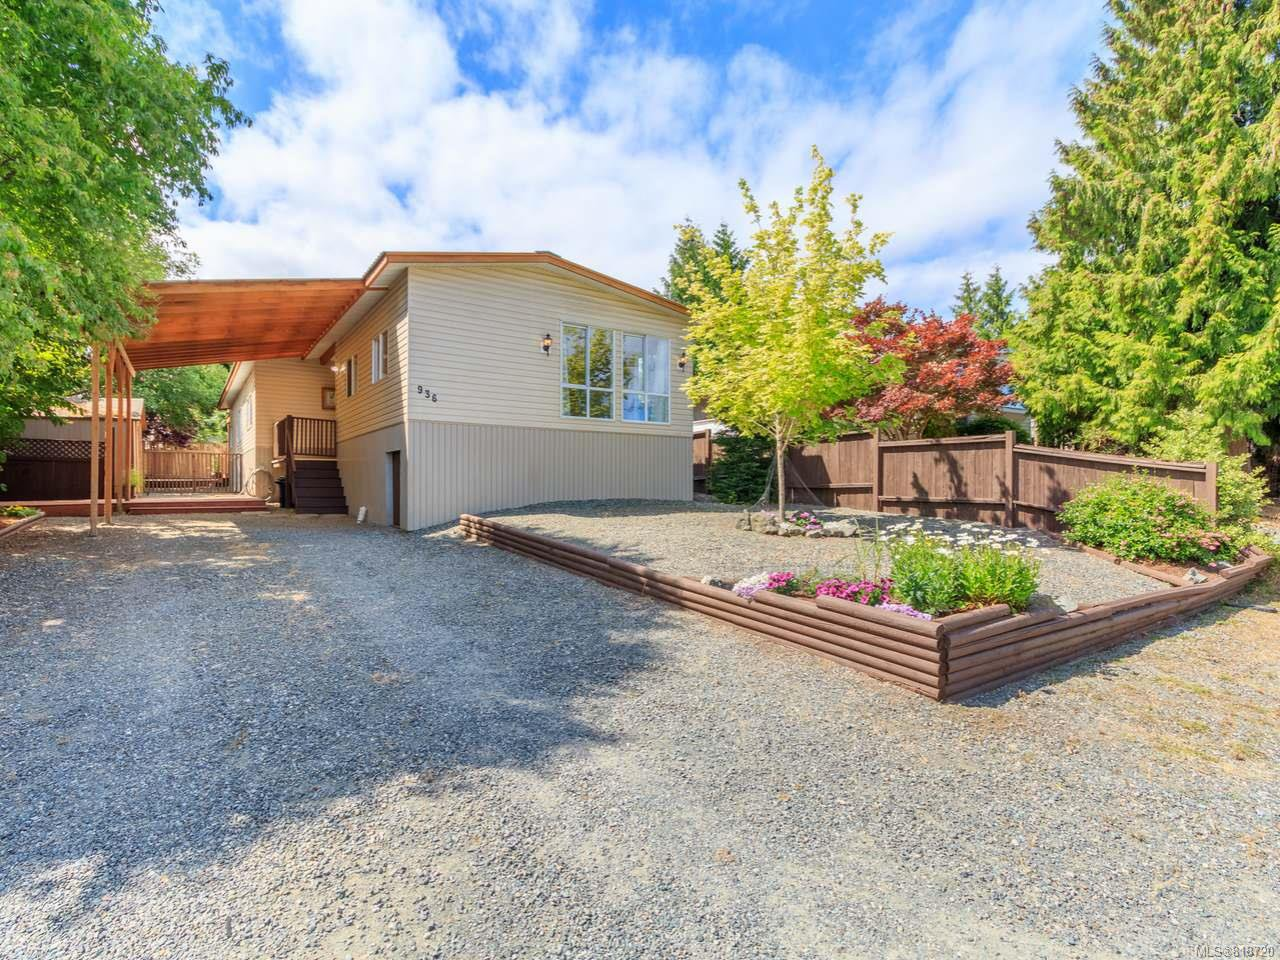 Main Photo: 936 Kasba Cir in FRENCH CREEK: PQ French Creek Manufactured Home for sale (Parksville/Qualicum)  : MLS®# 818720